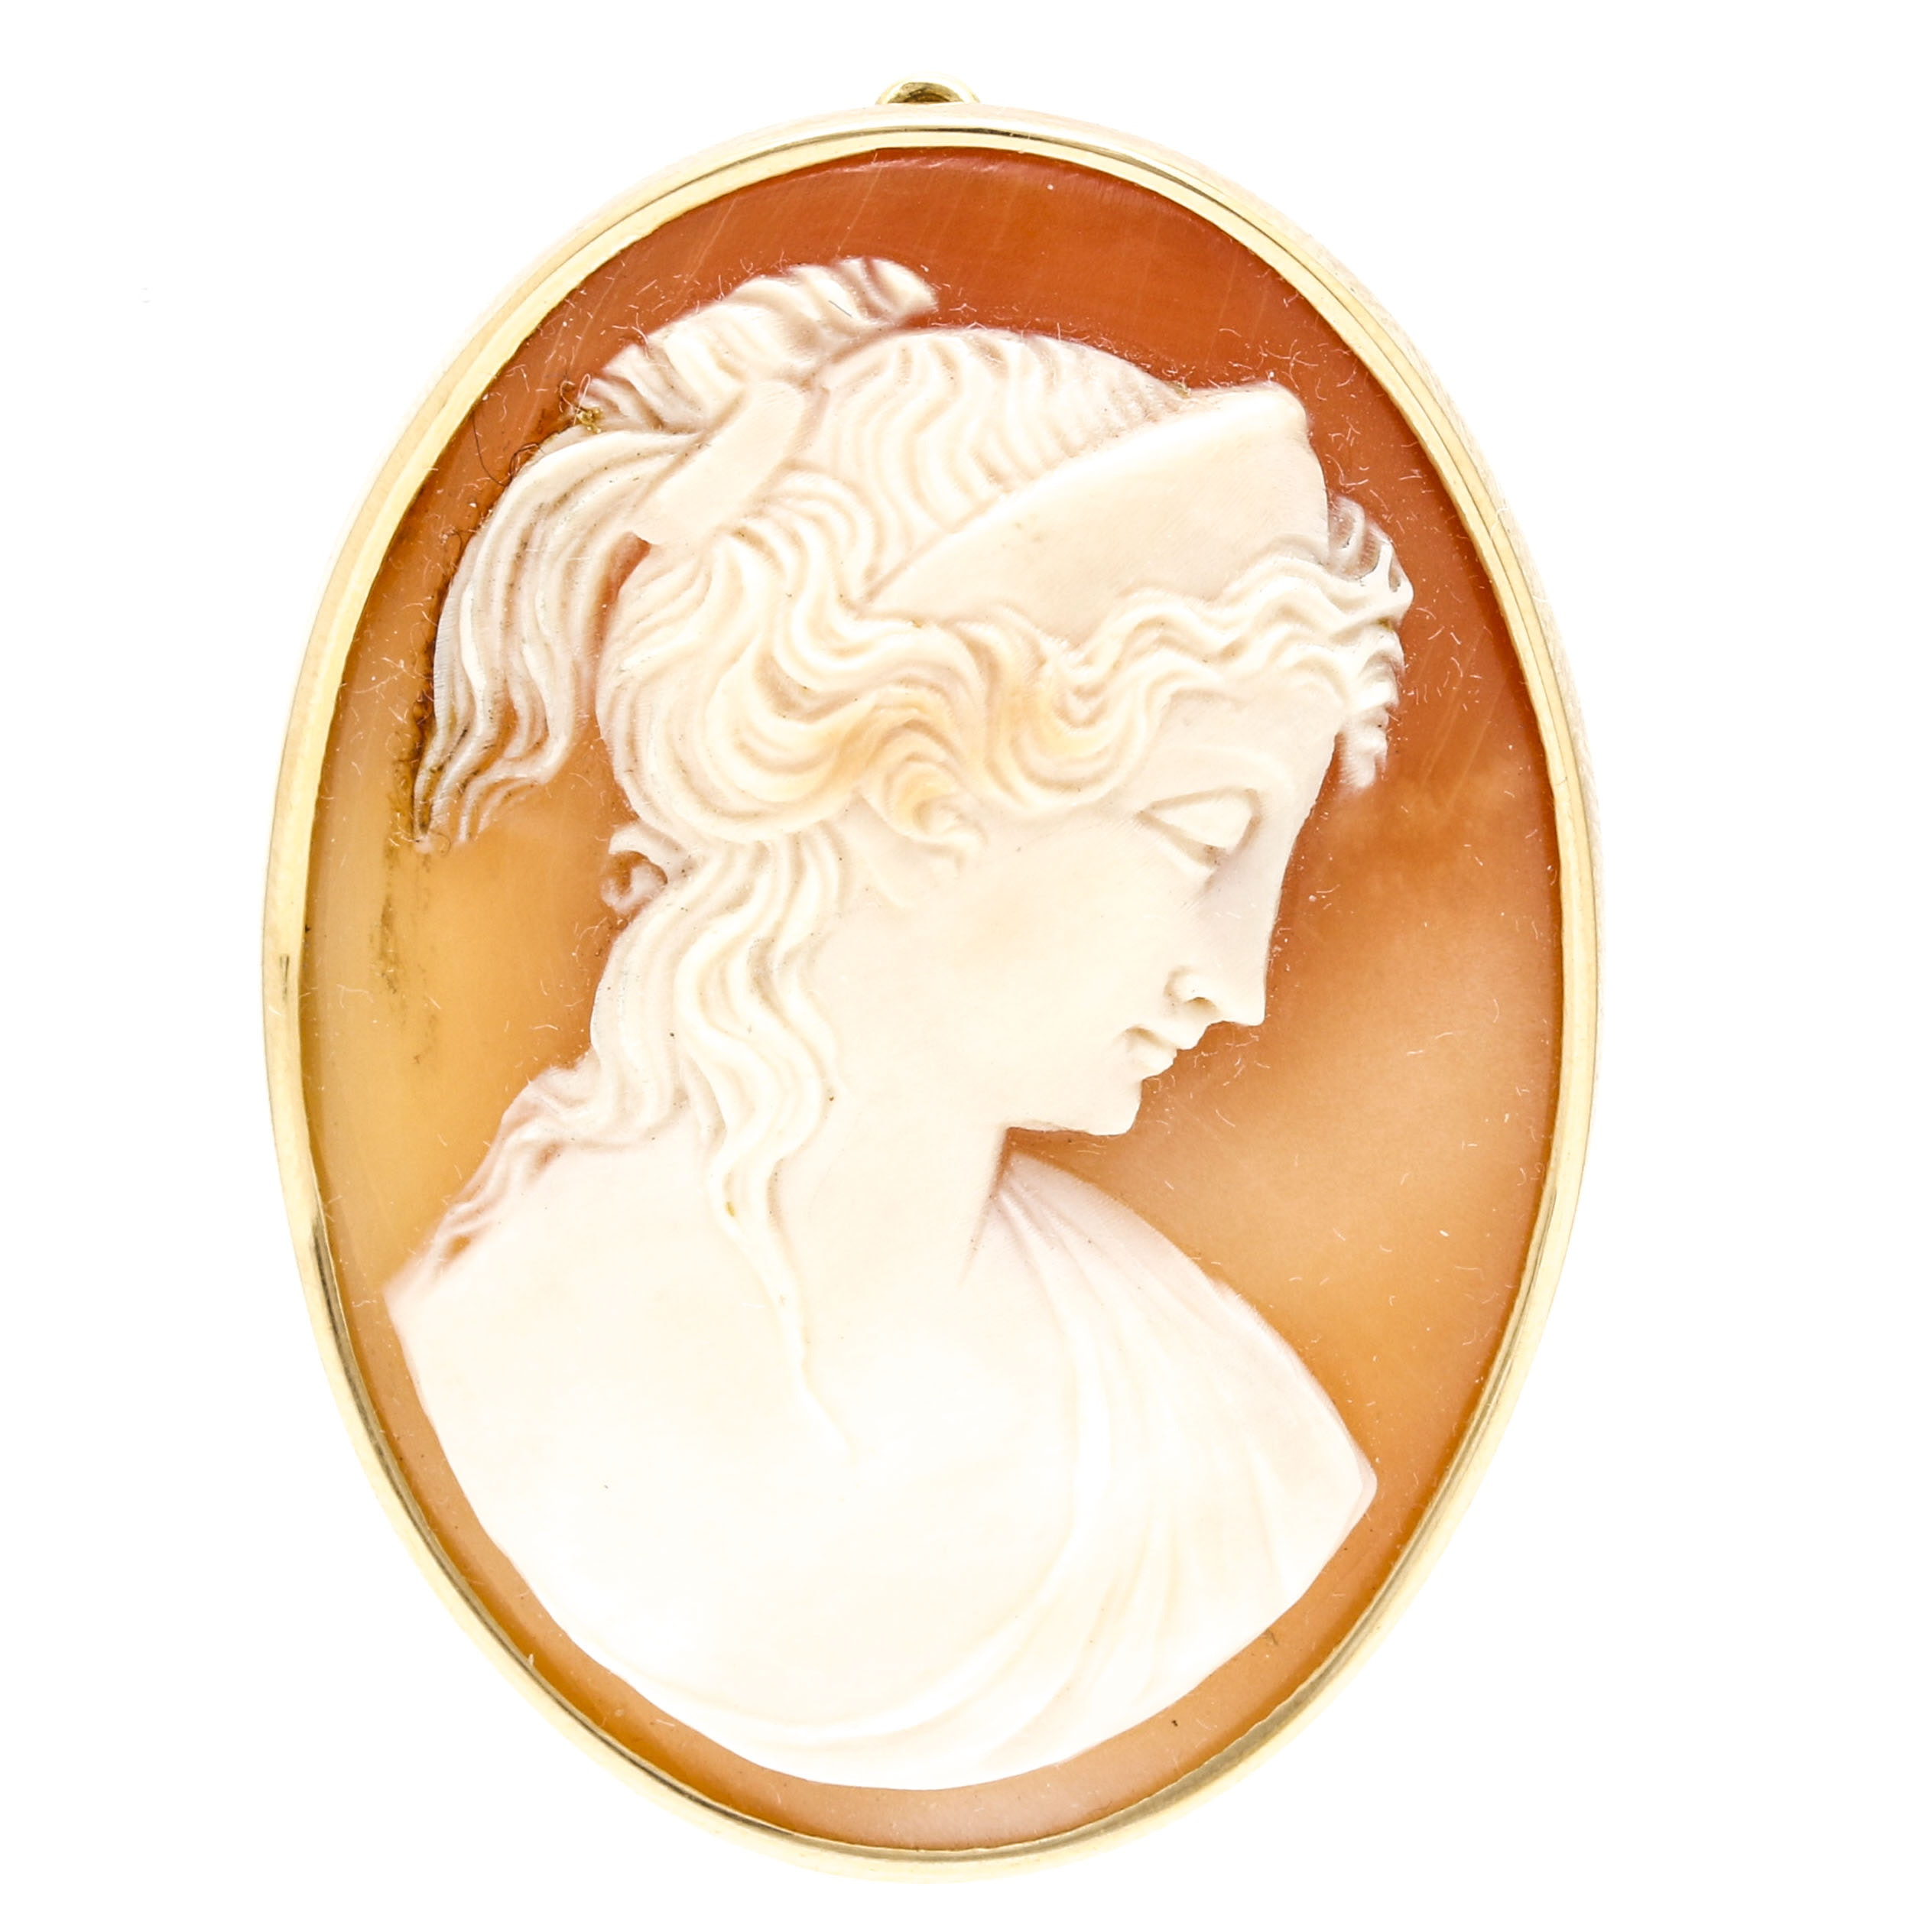 Donadio 18K Yellow Gold Cameo Brooch Pendant